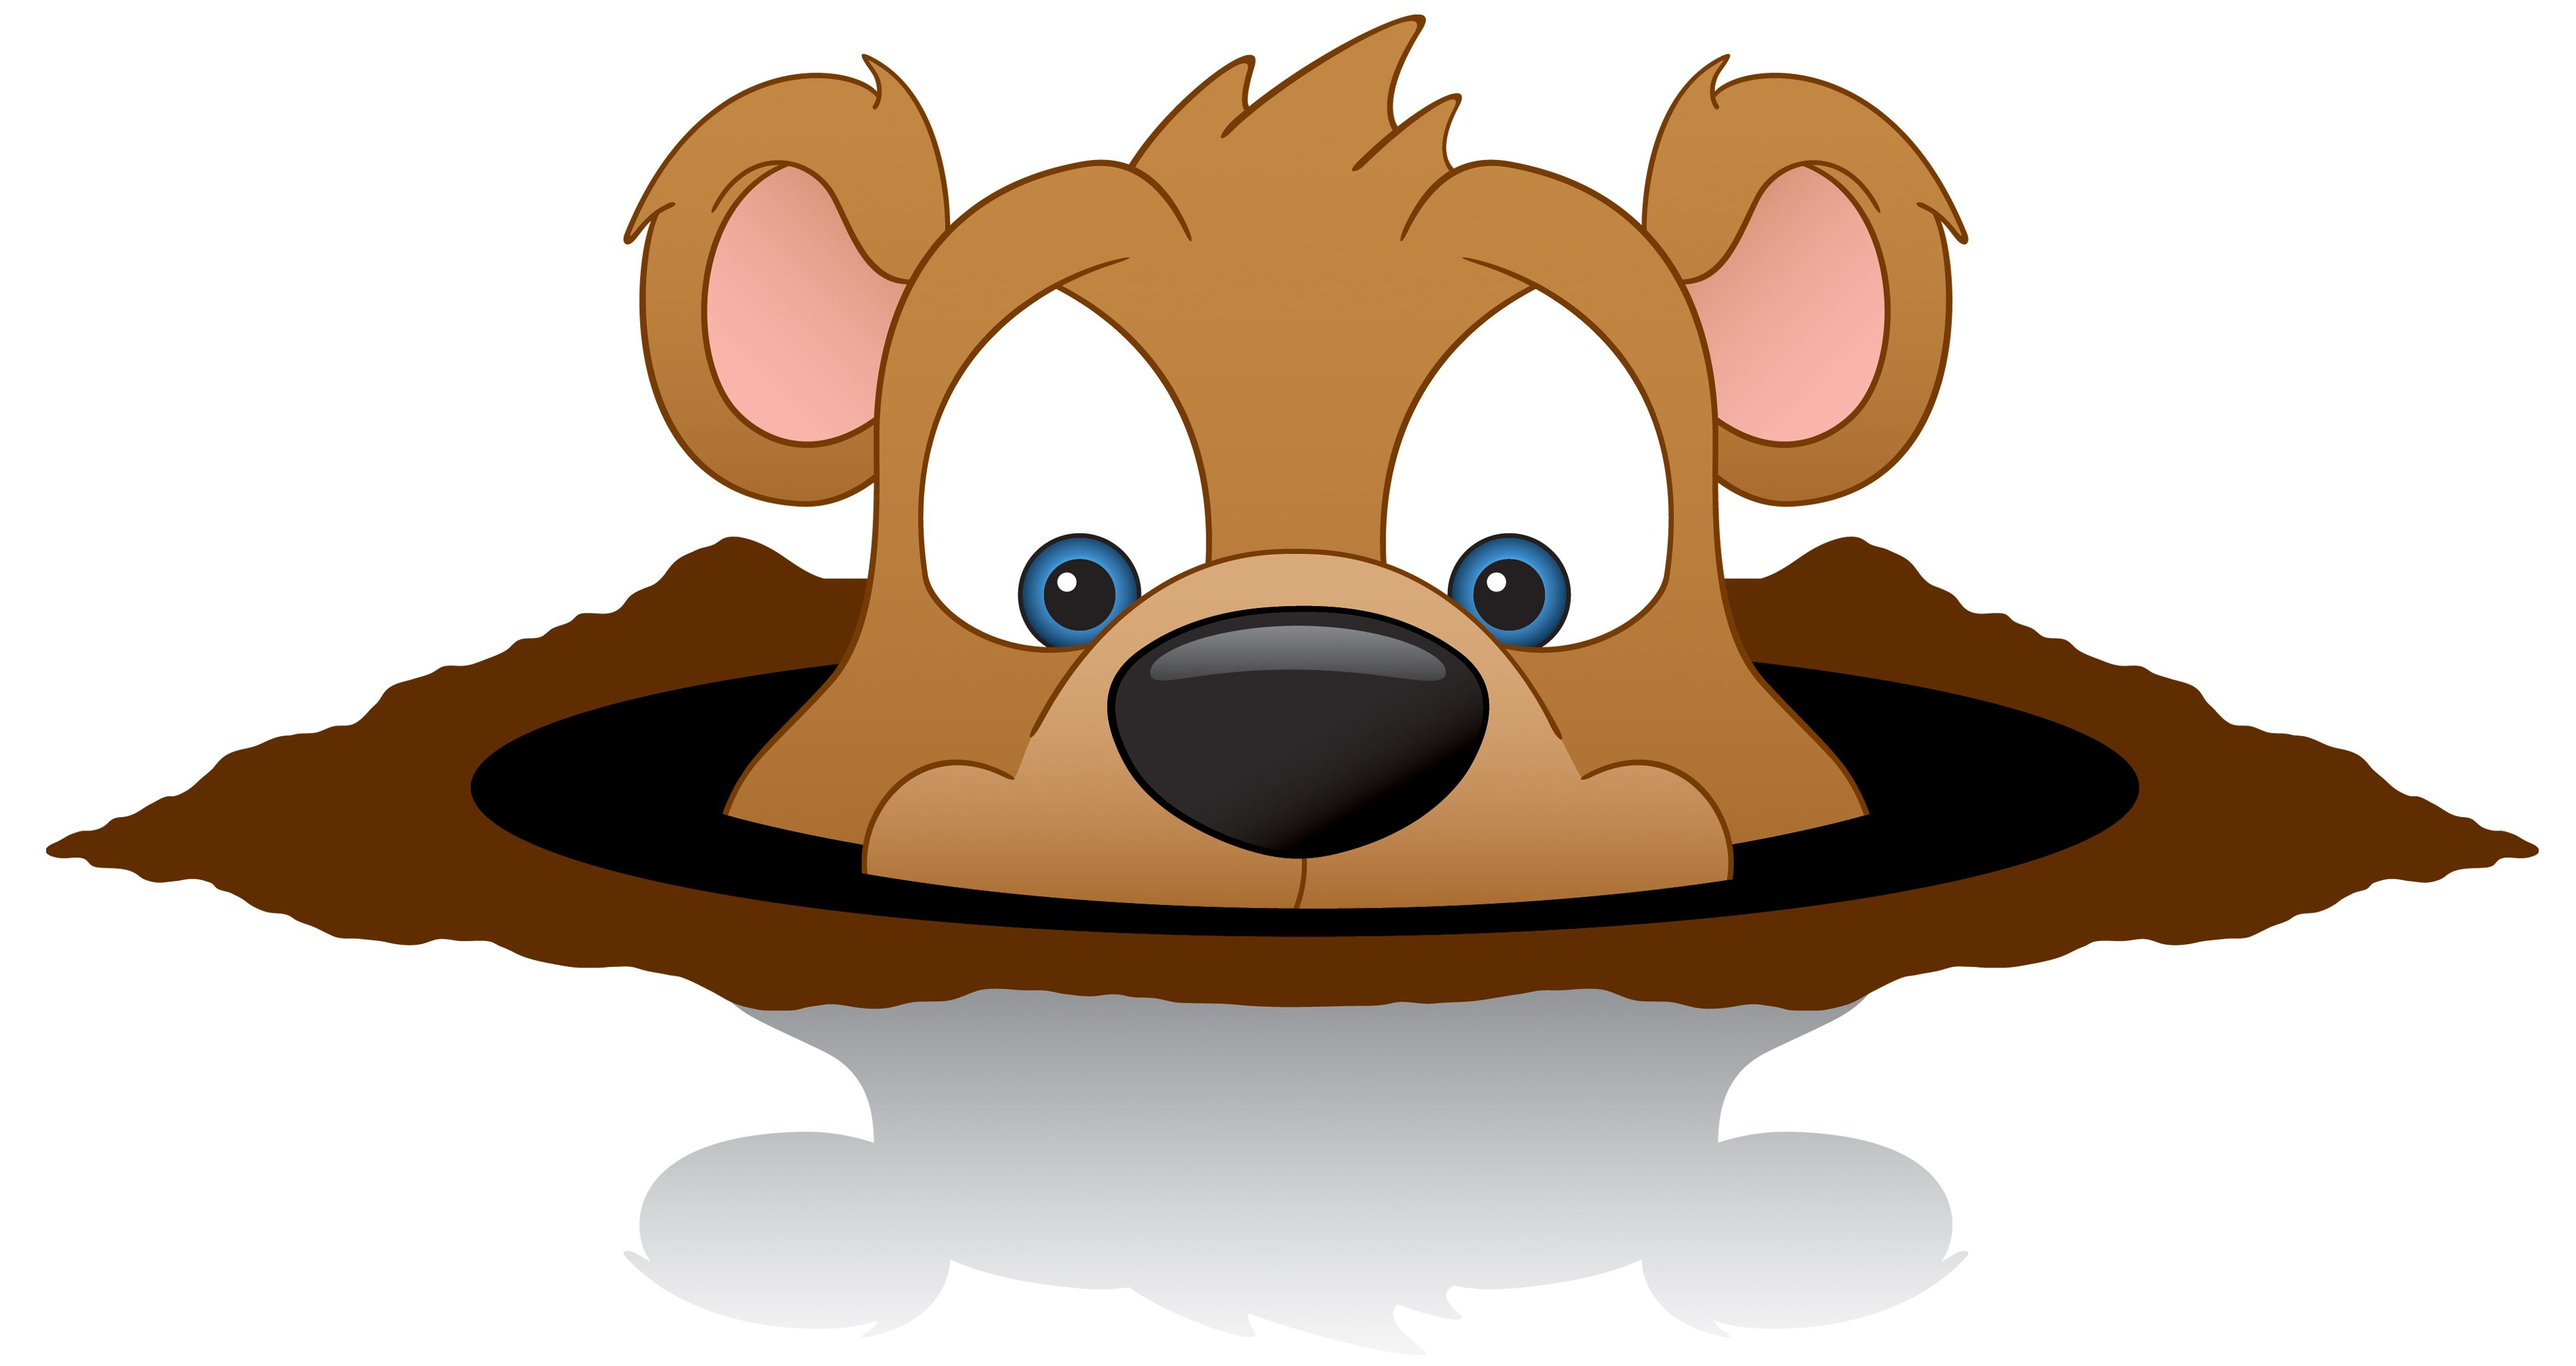 Puscatawny phil clip art. Groundhog clipart happy